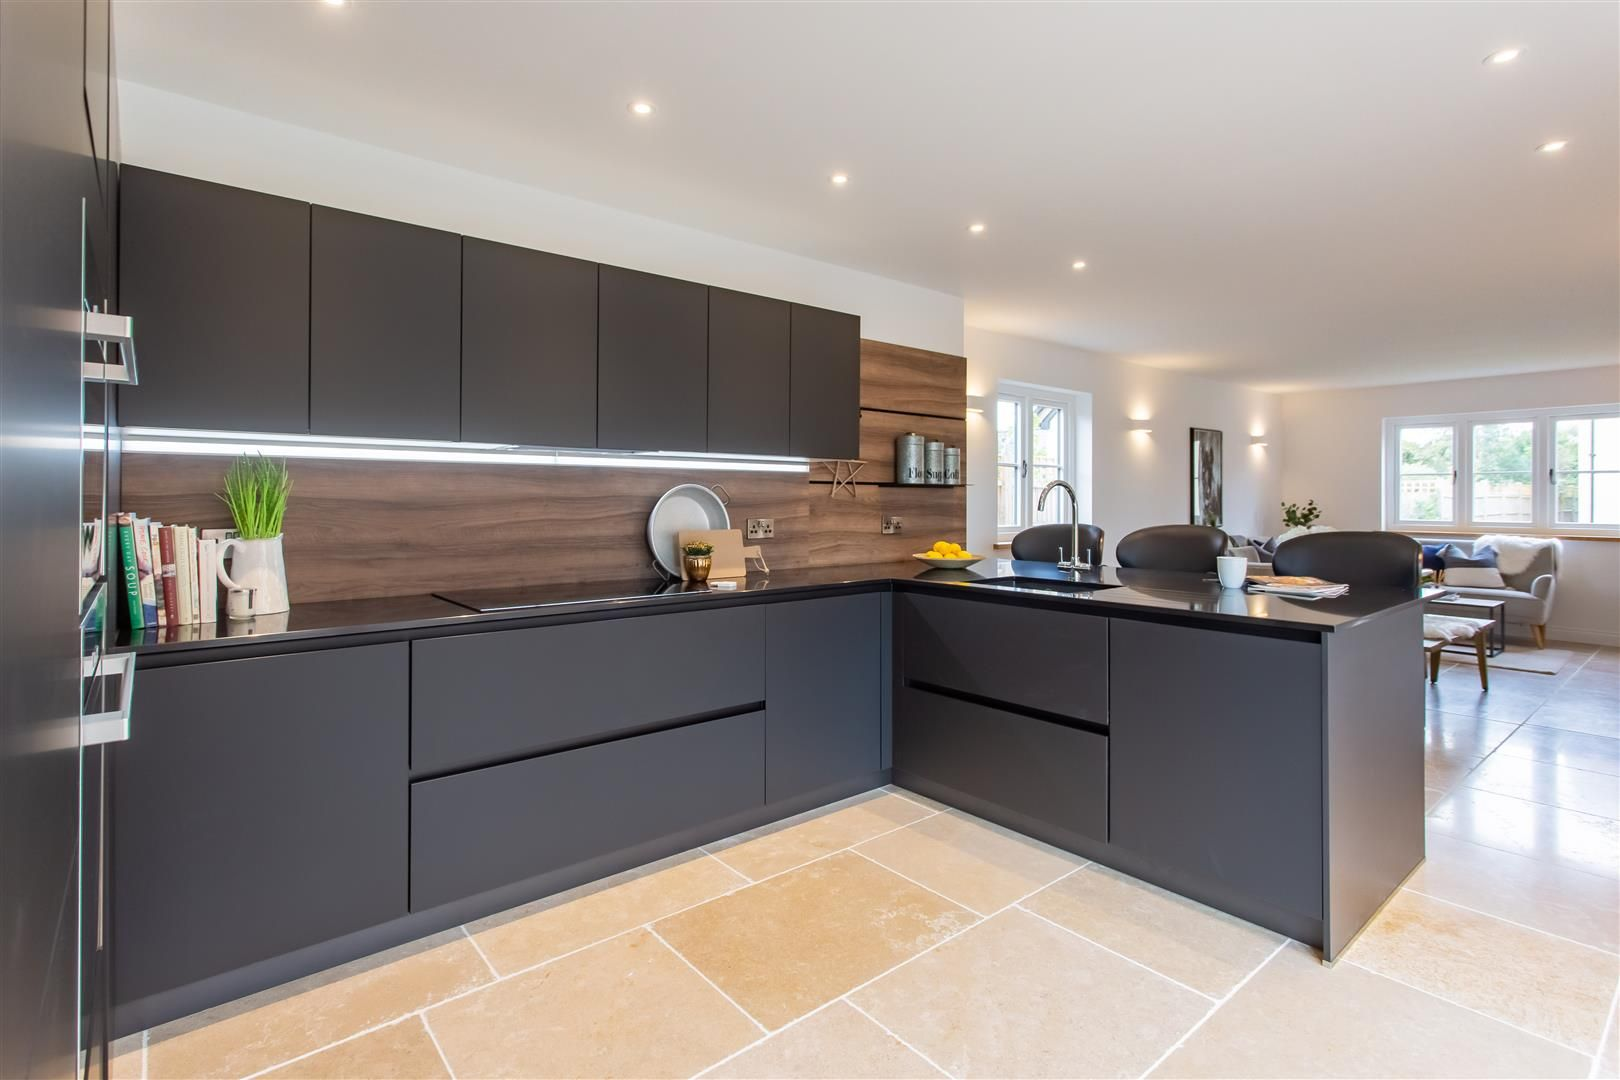 4 bed detached for sale in Marden 5